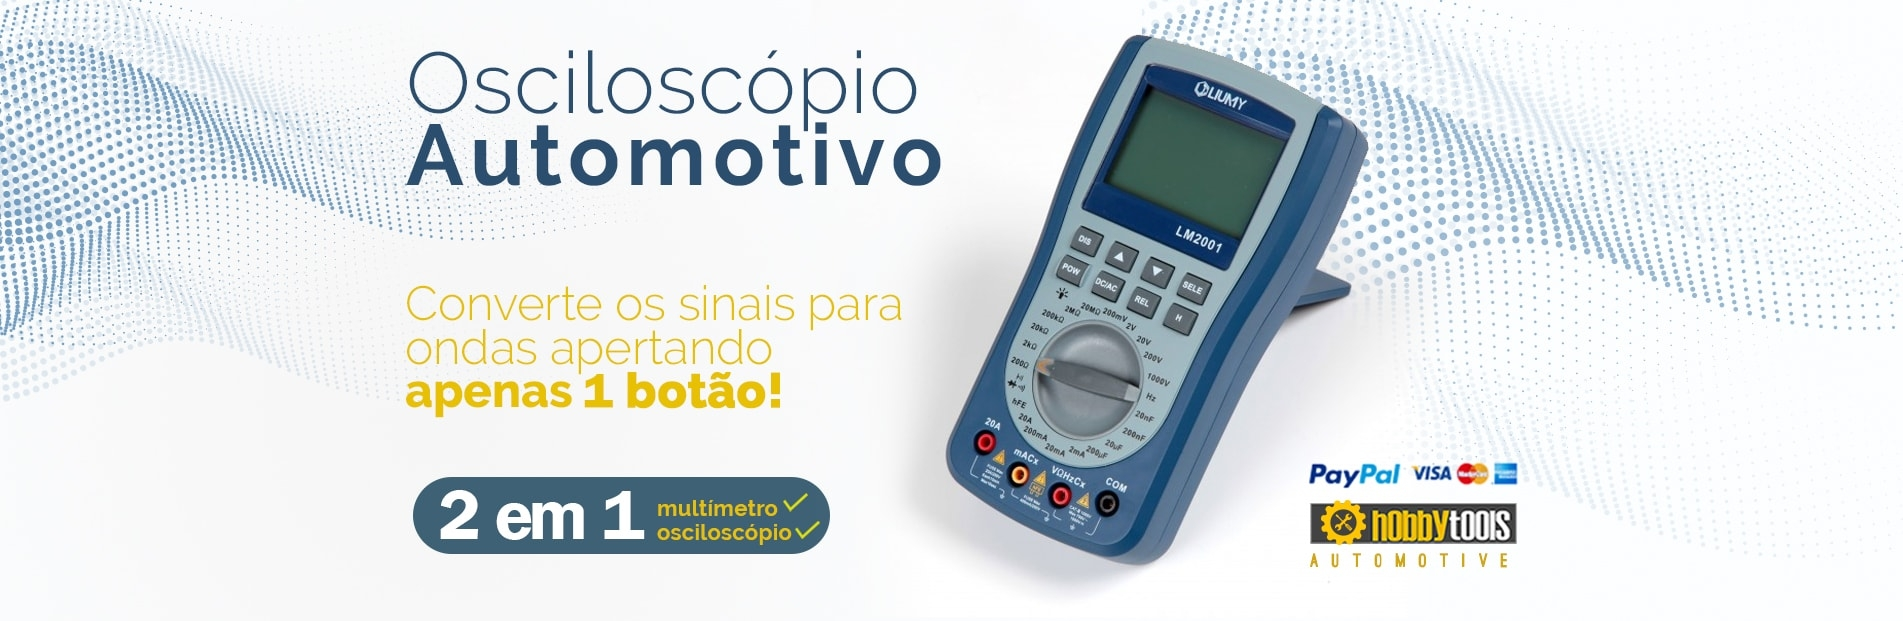 Osciloscópio Automotivo